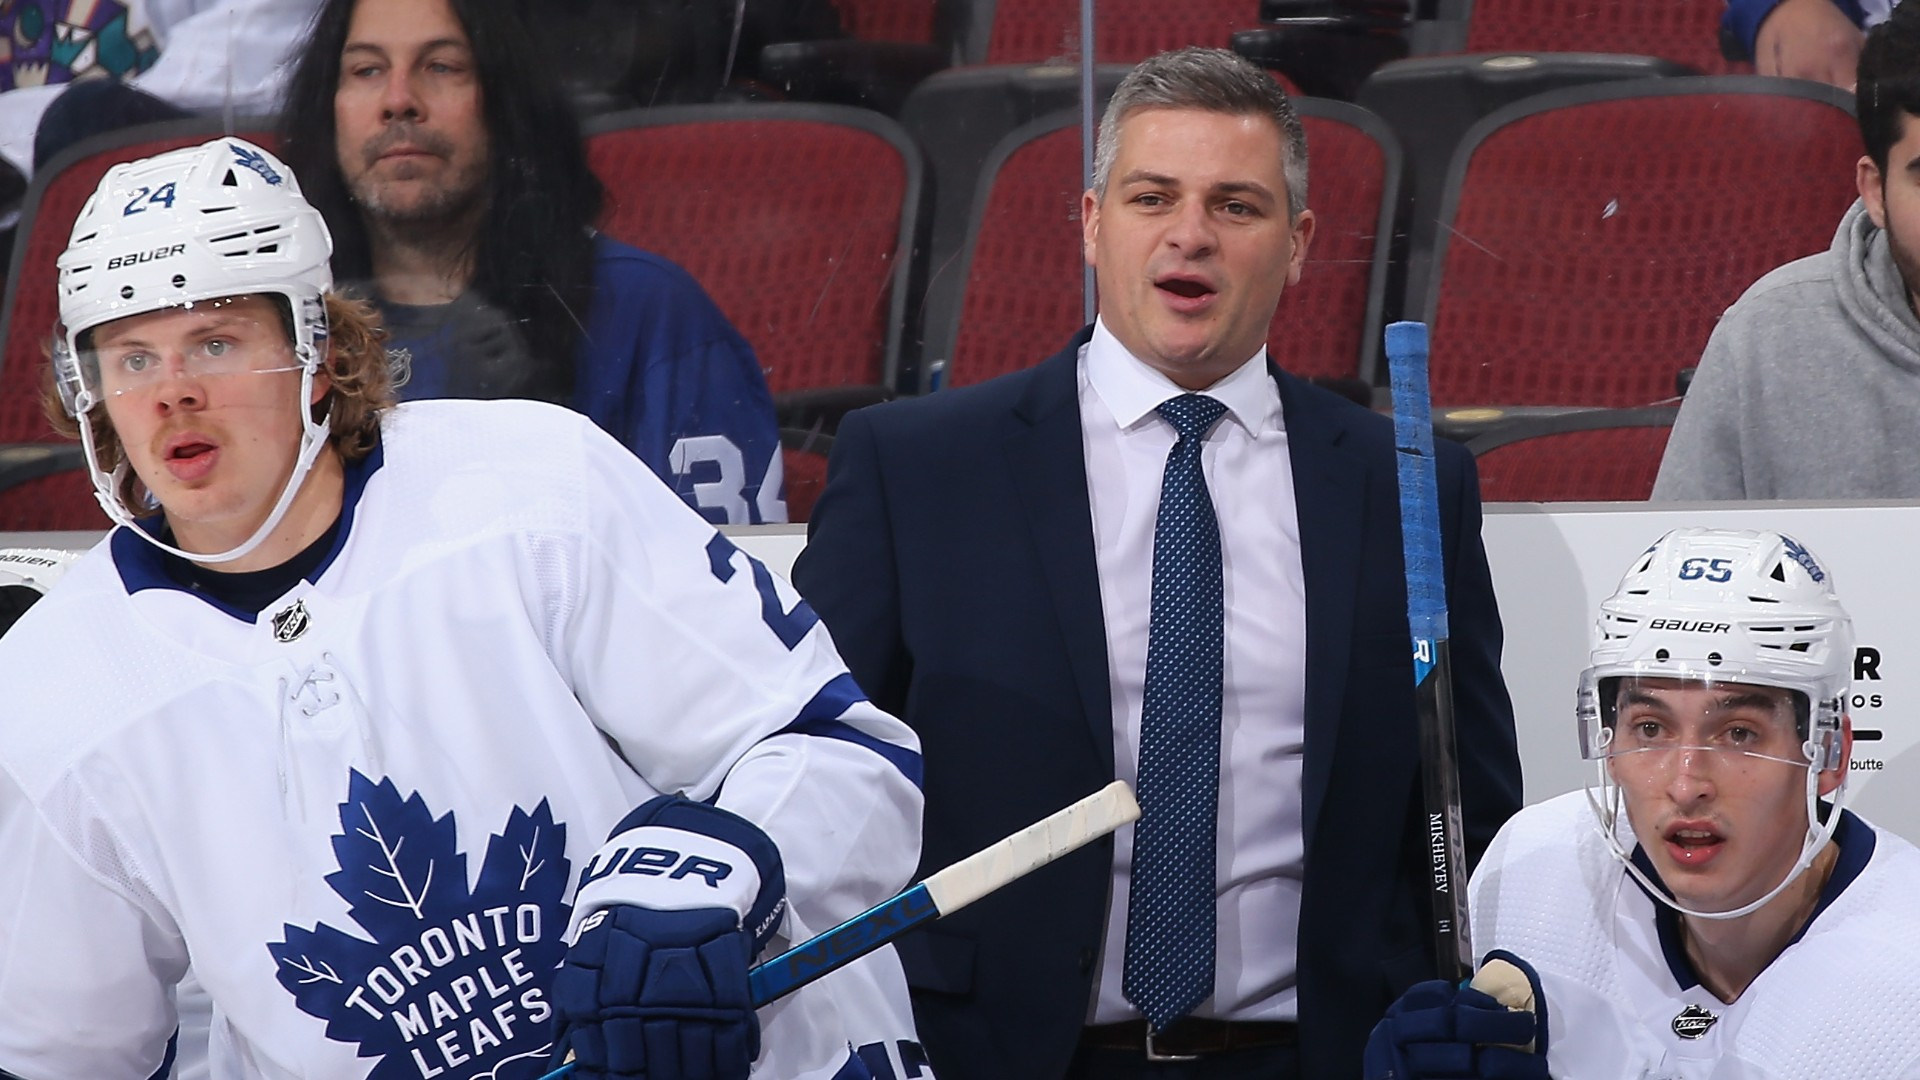 Maple Leafs coach Sheldon Keefe after Toronto blows three-goal lead, loses in OT: 'We just got what we deserved' 1